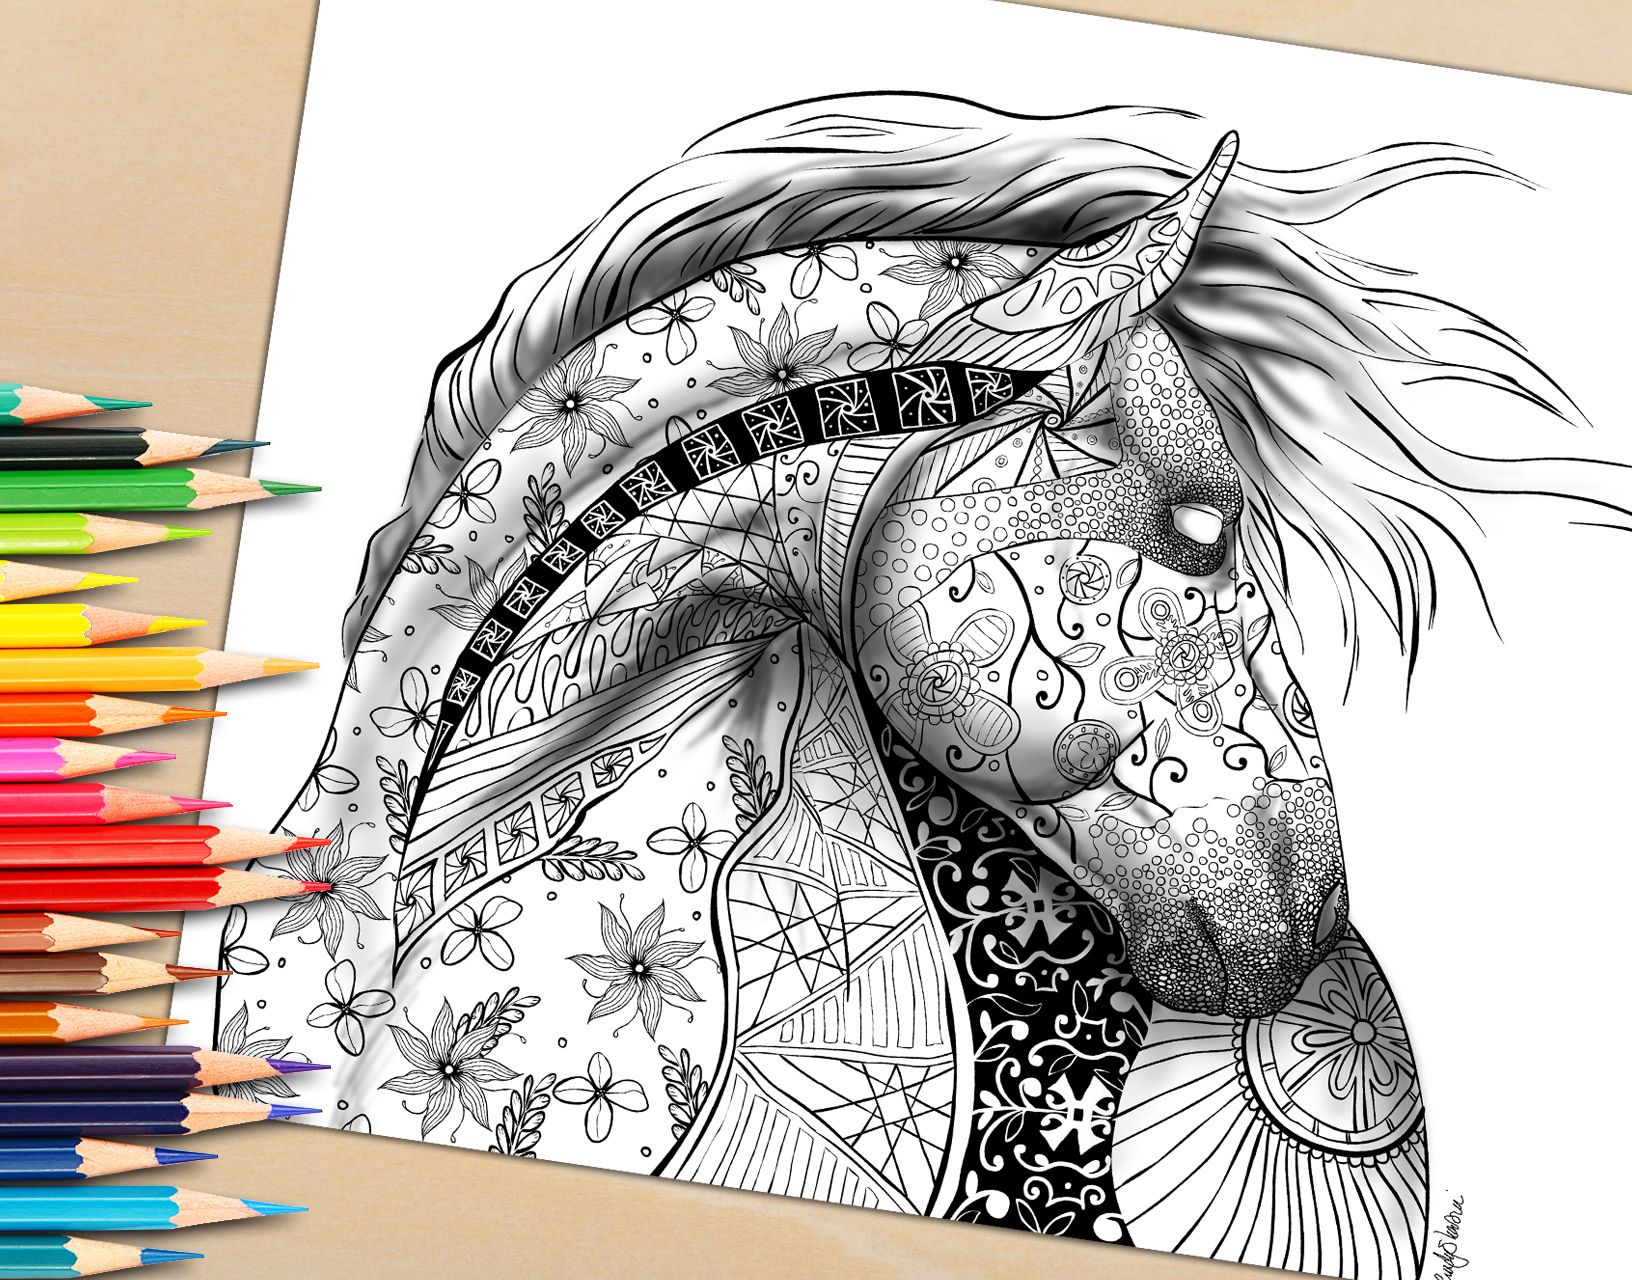 Get Updates on Upcoming Books and Free Coloring Pages art work